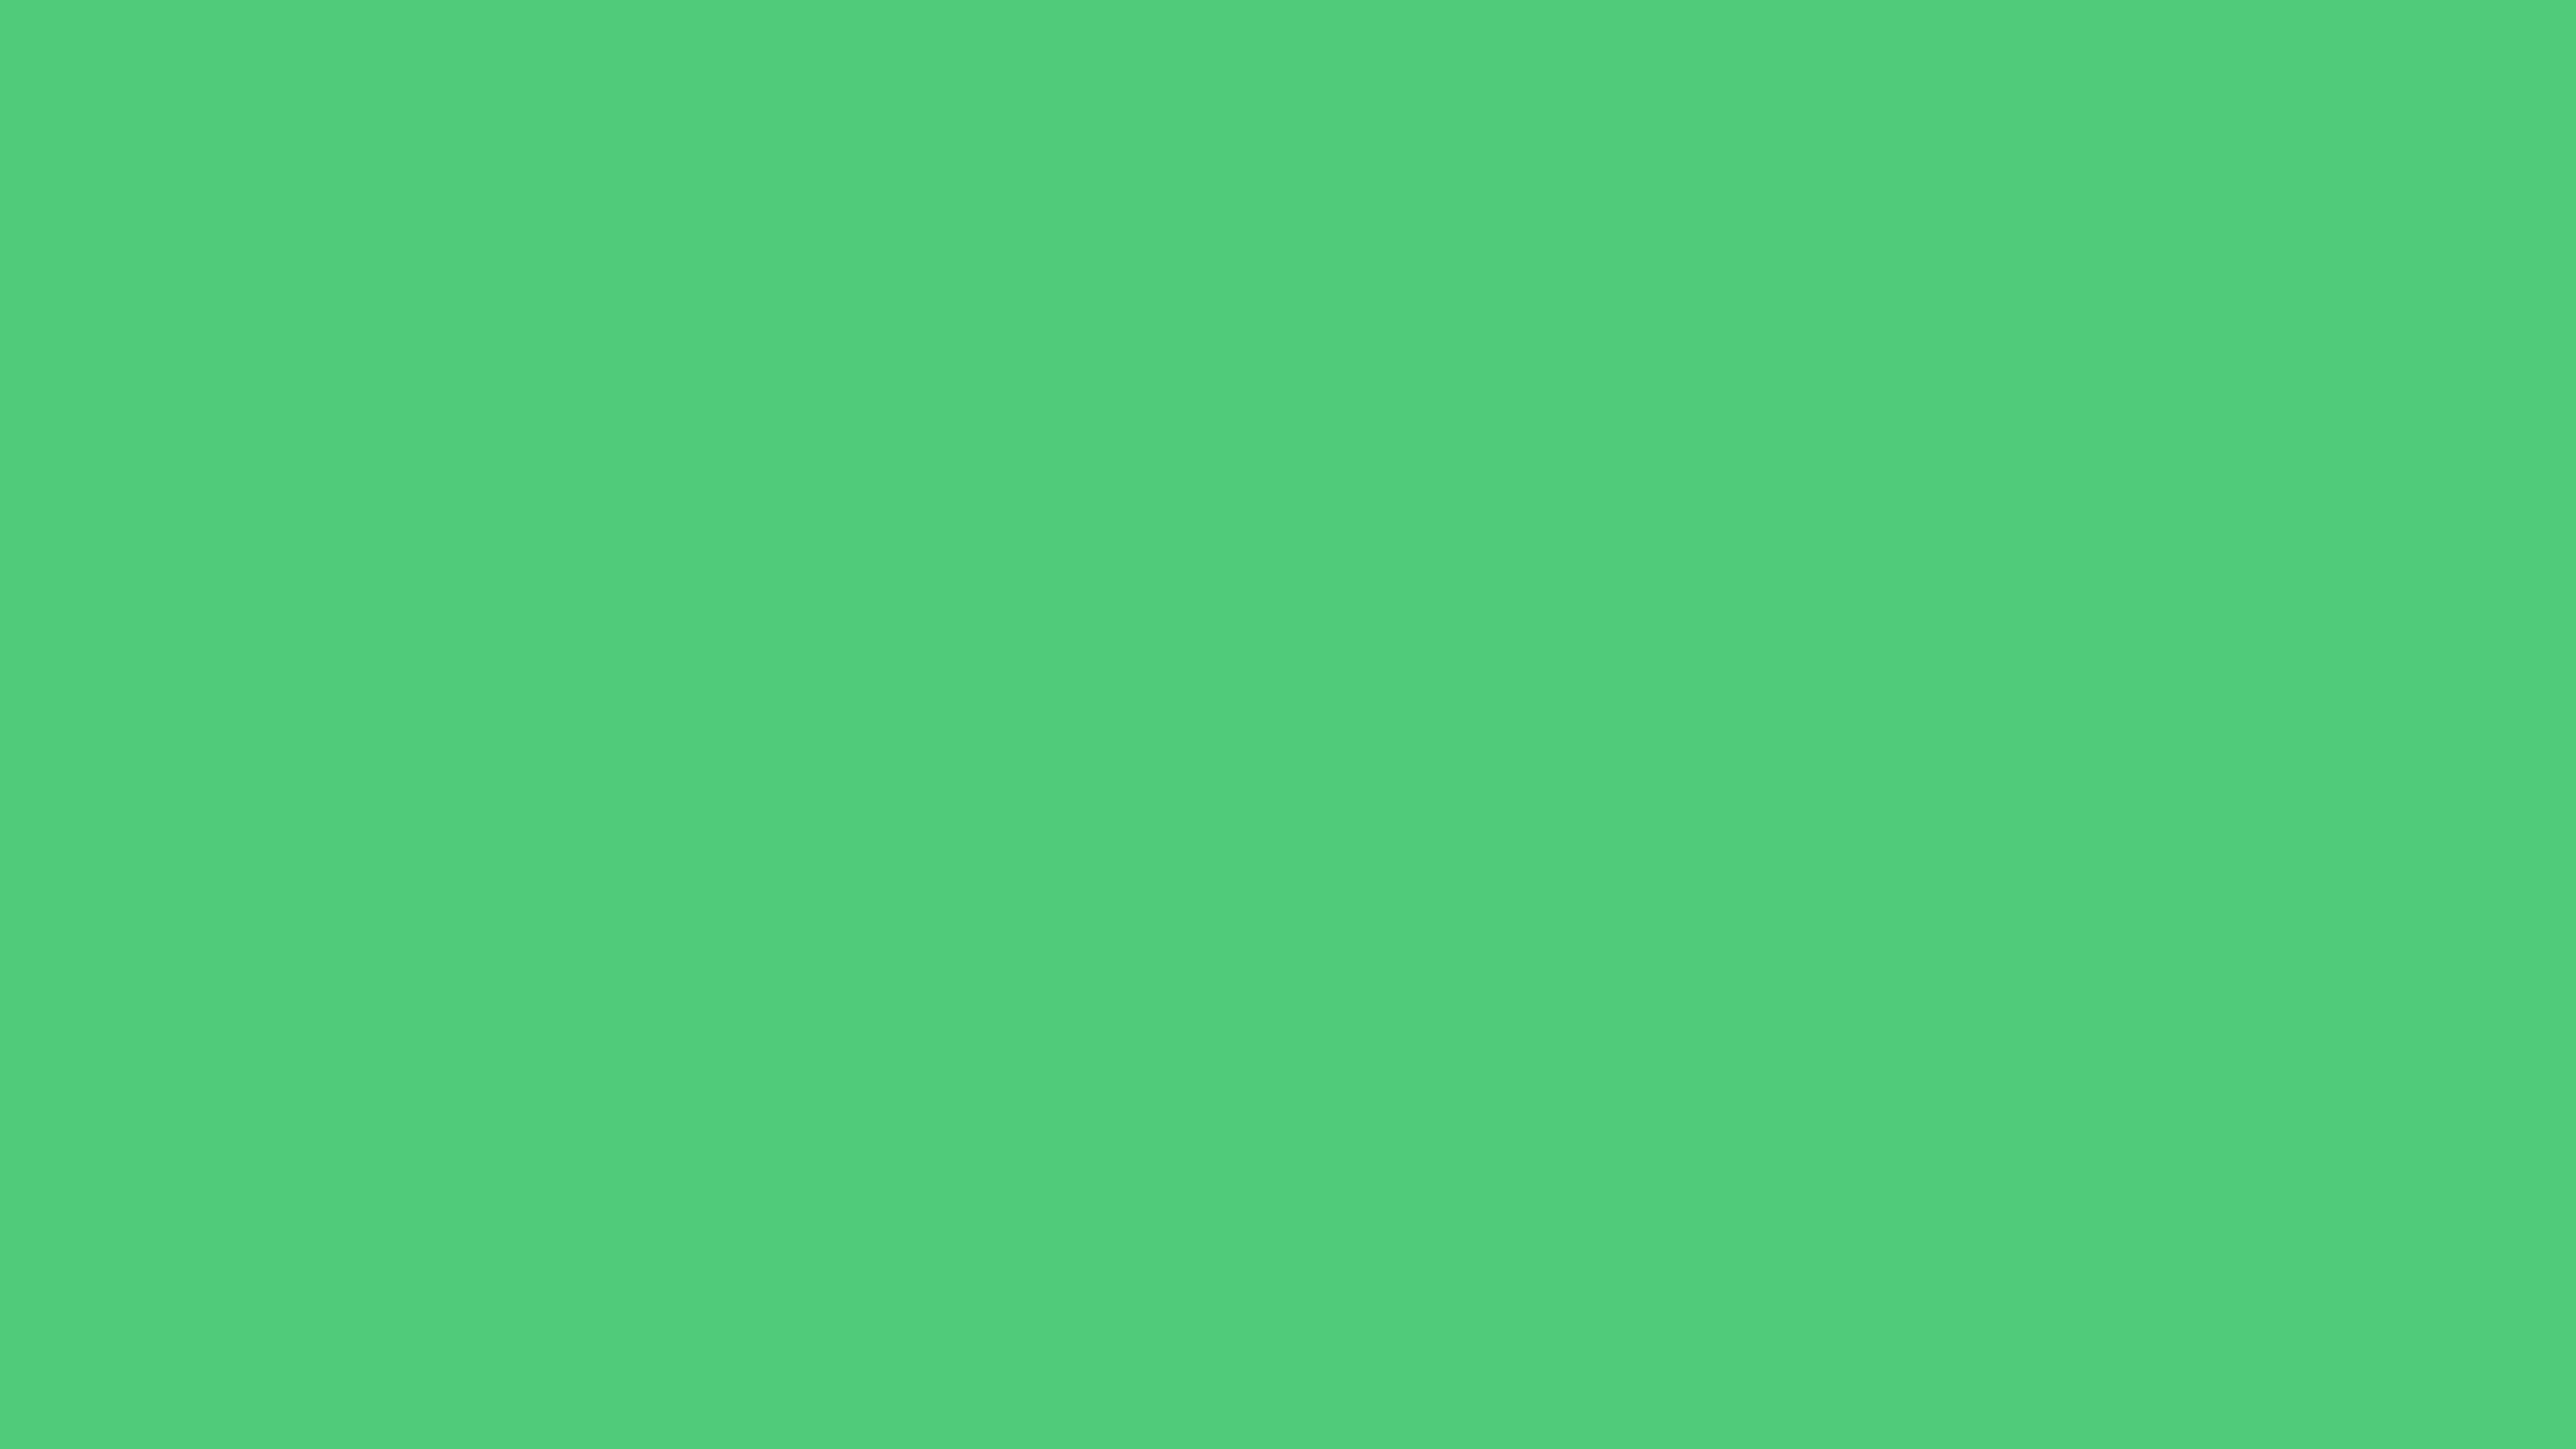 4096x2304 Emerald Solid Color Background